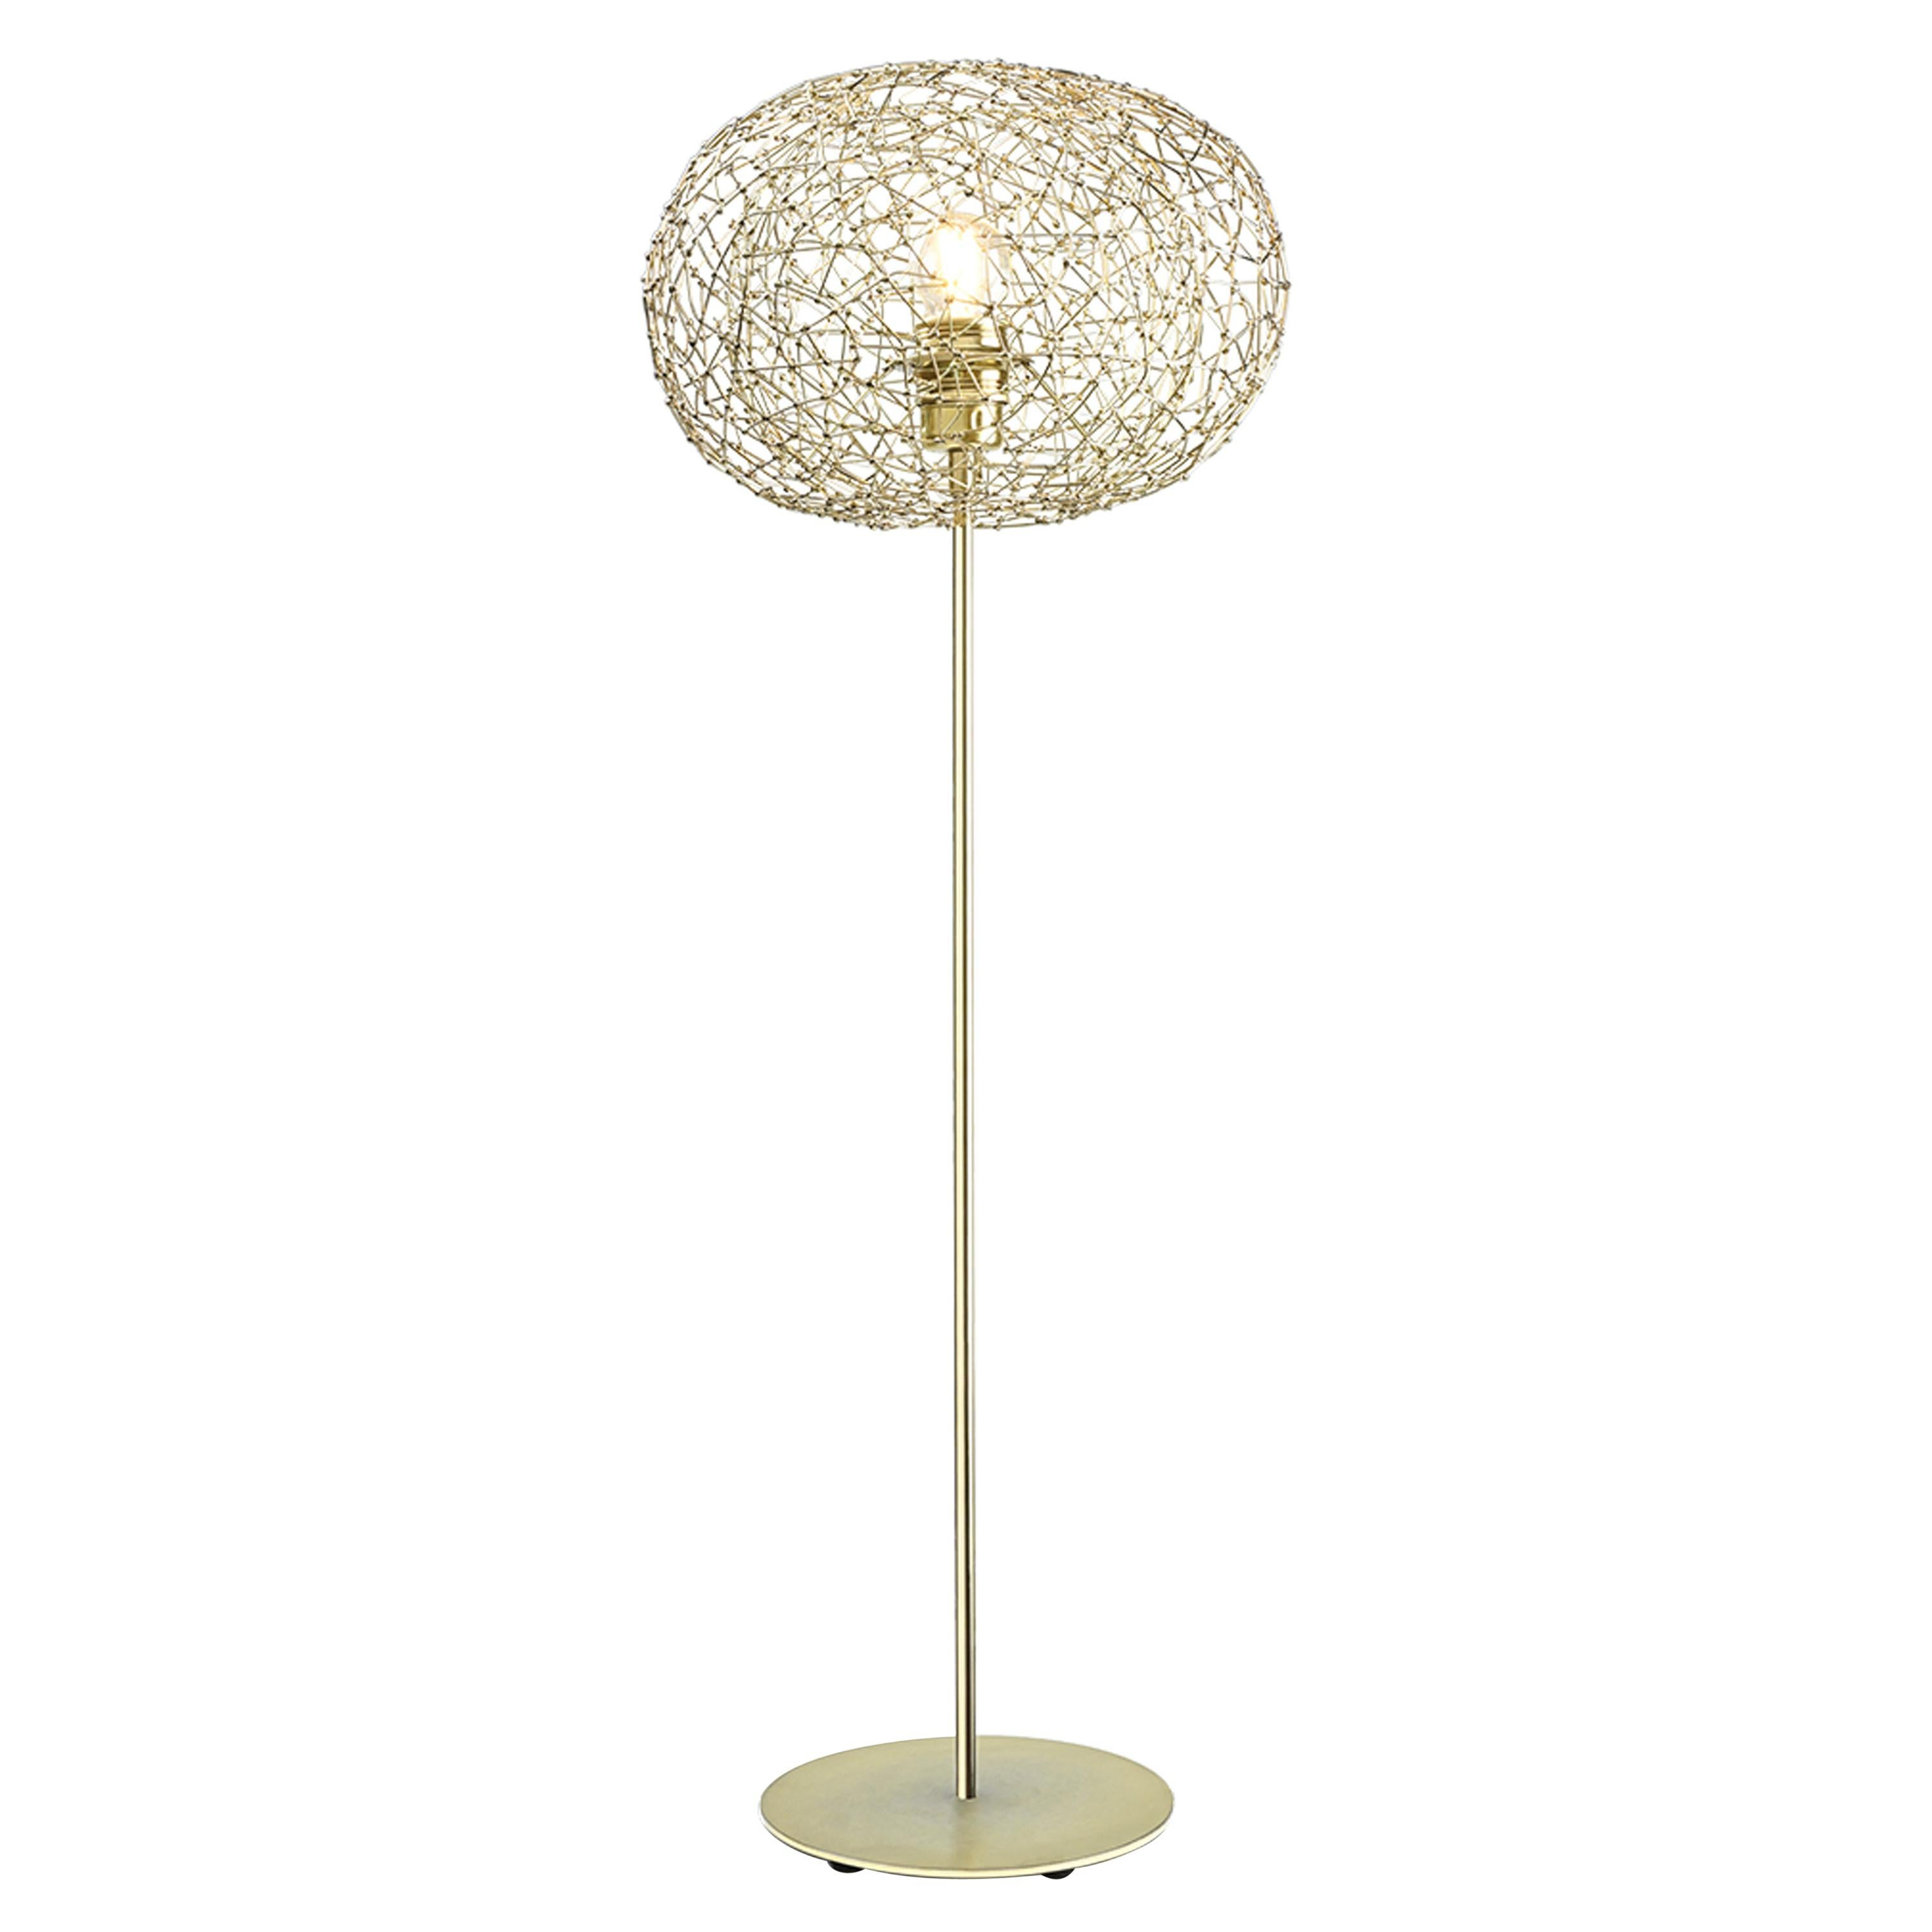 Halo Table Lamp by Ango, a Modern Sculptural Jewel like Lighting in 21st Century